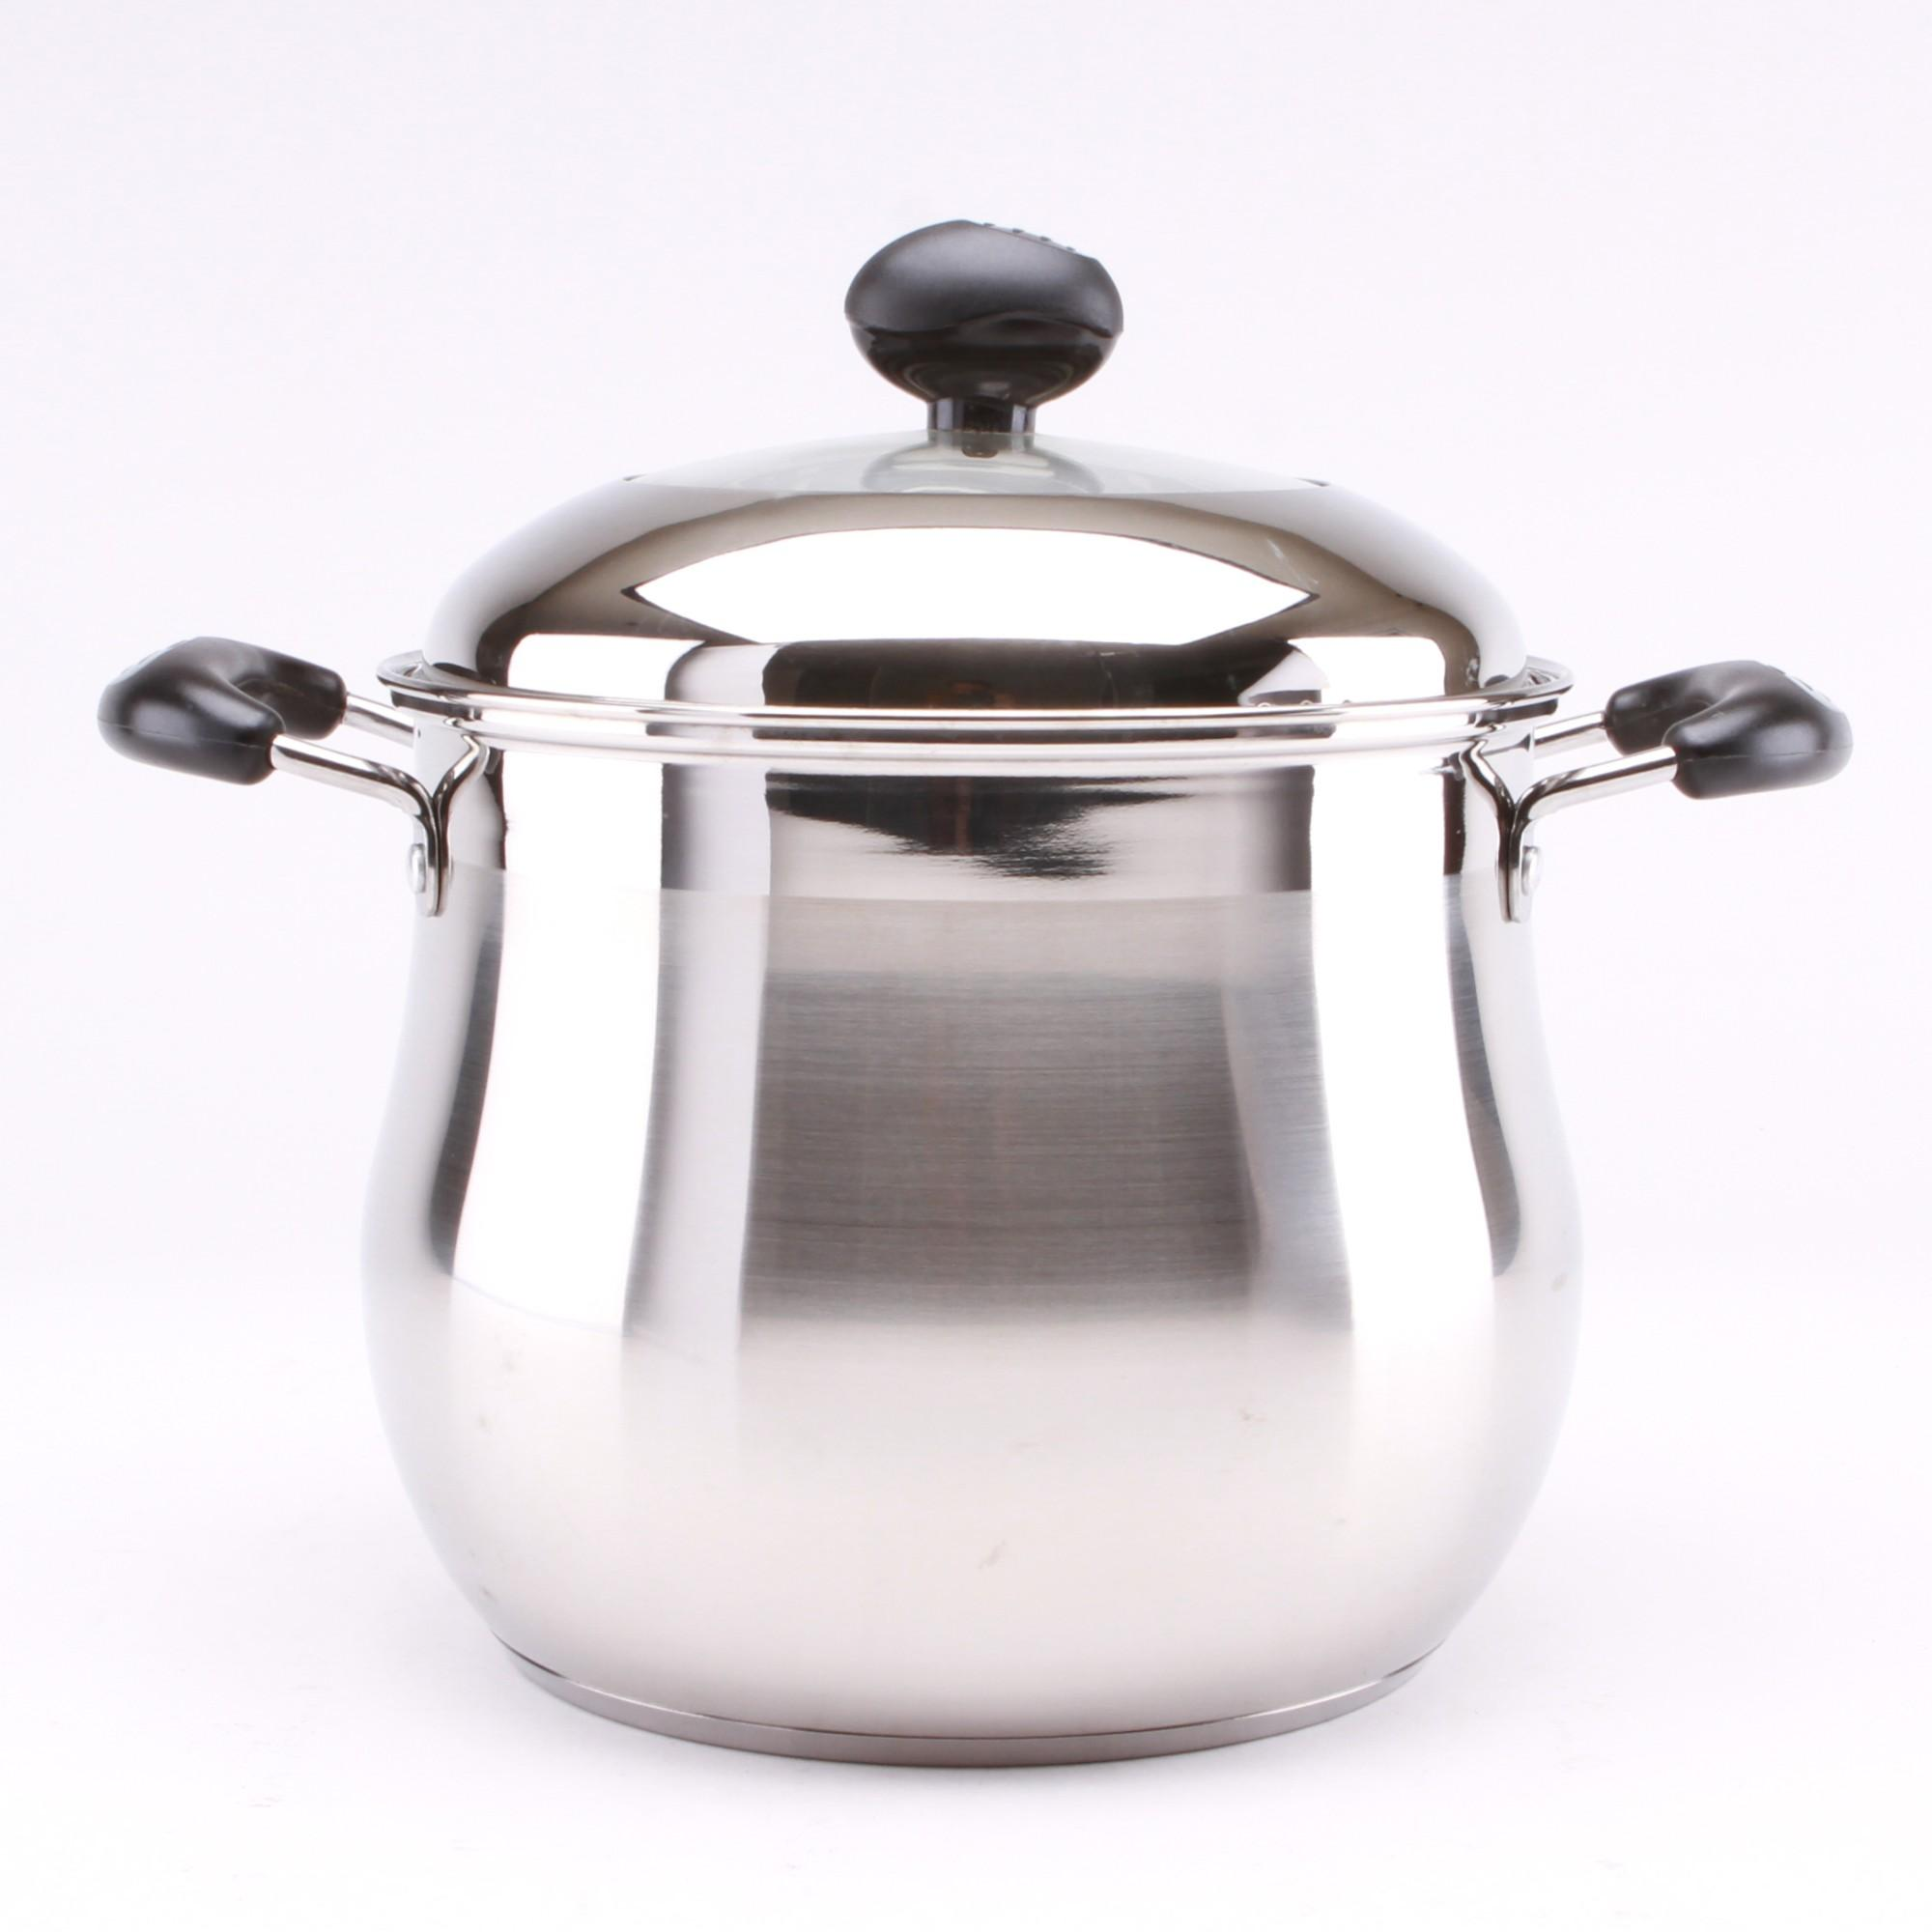 Cookware for sale - Cooking Ware Products prices, brands & review in ...